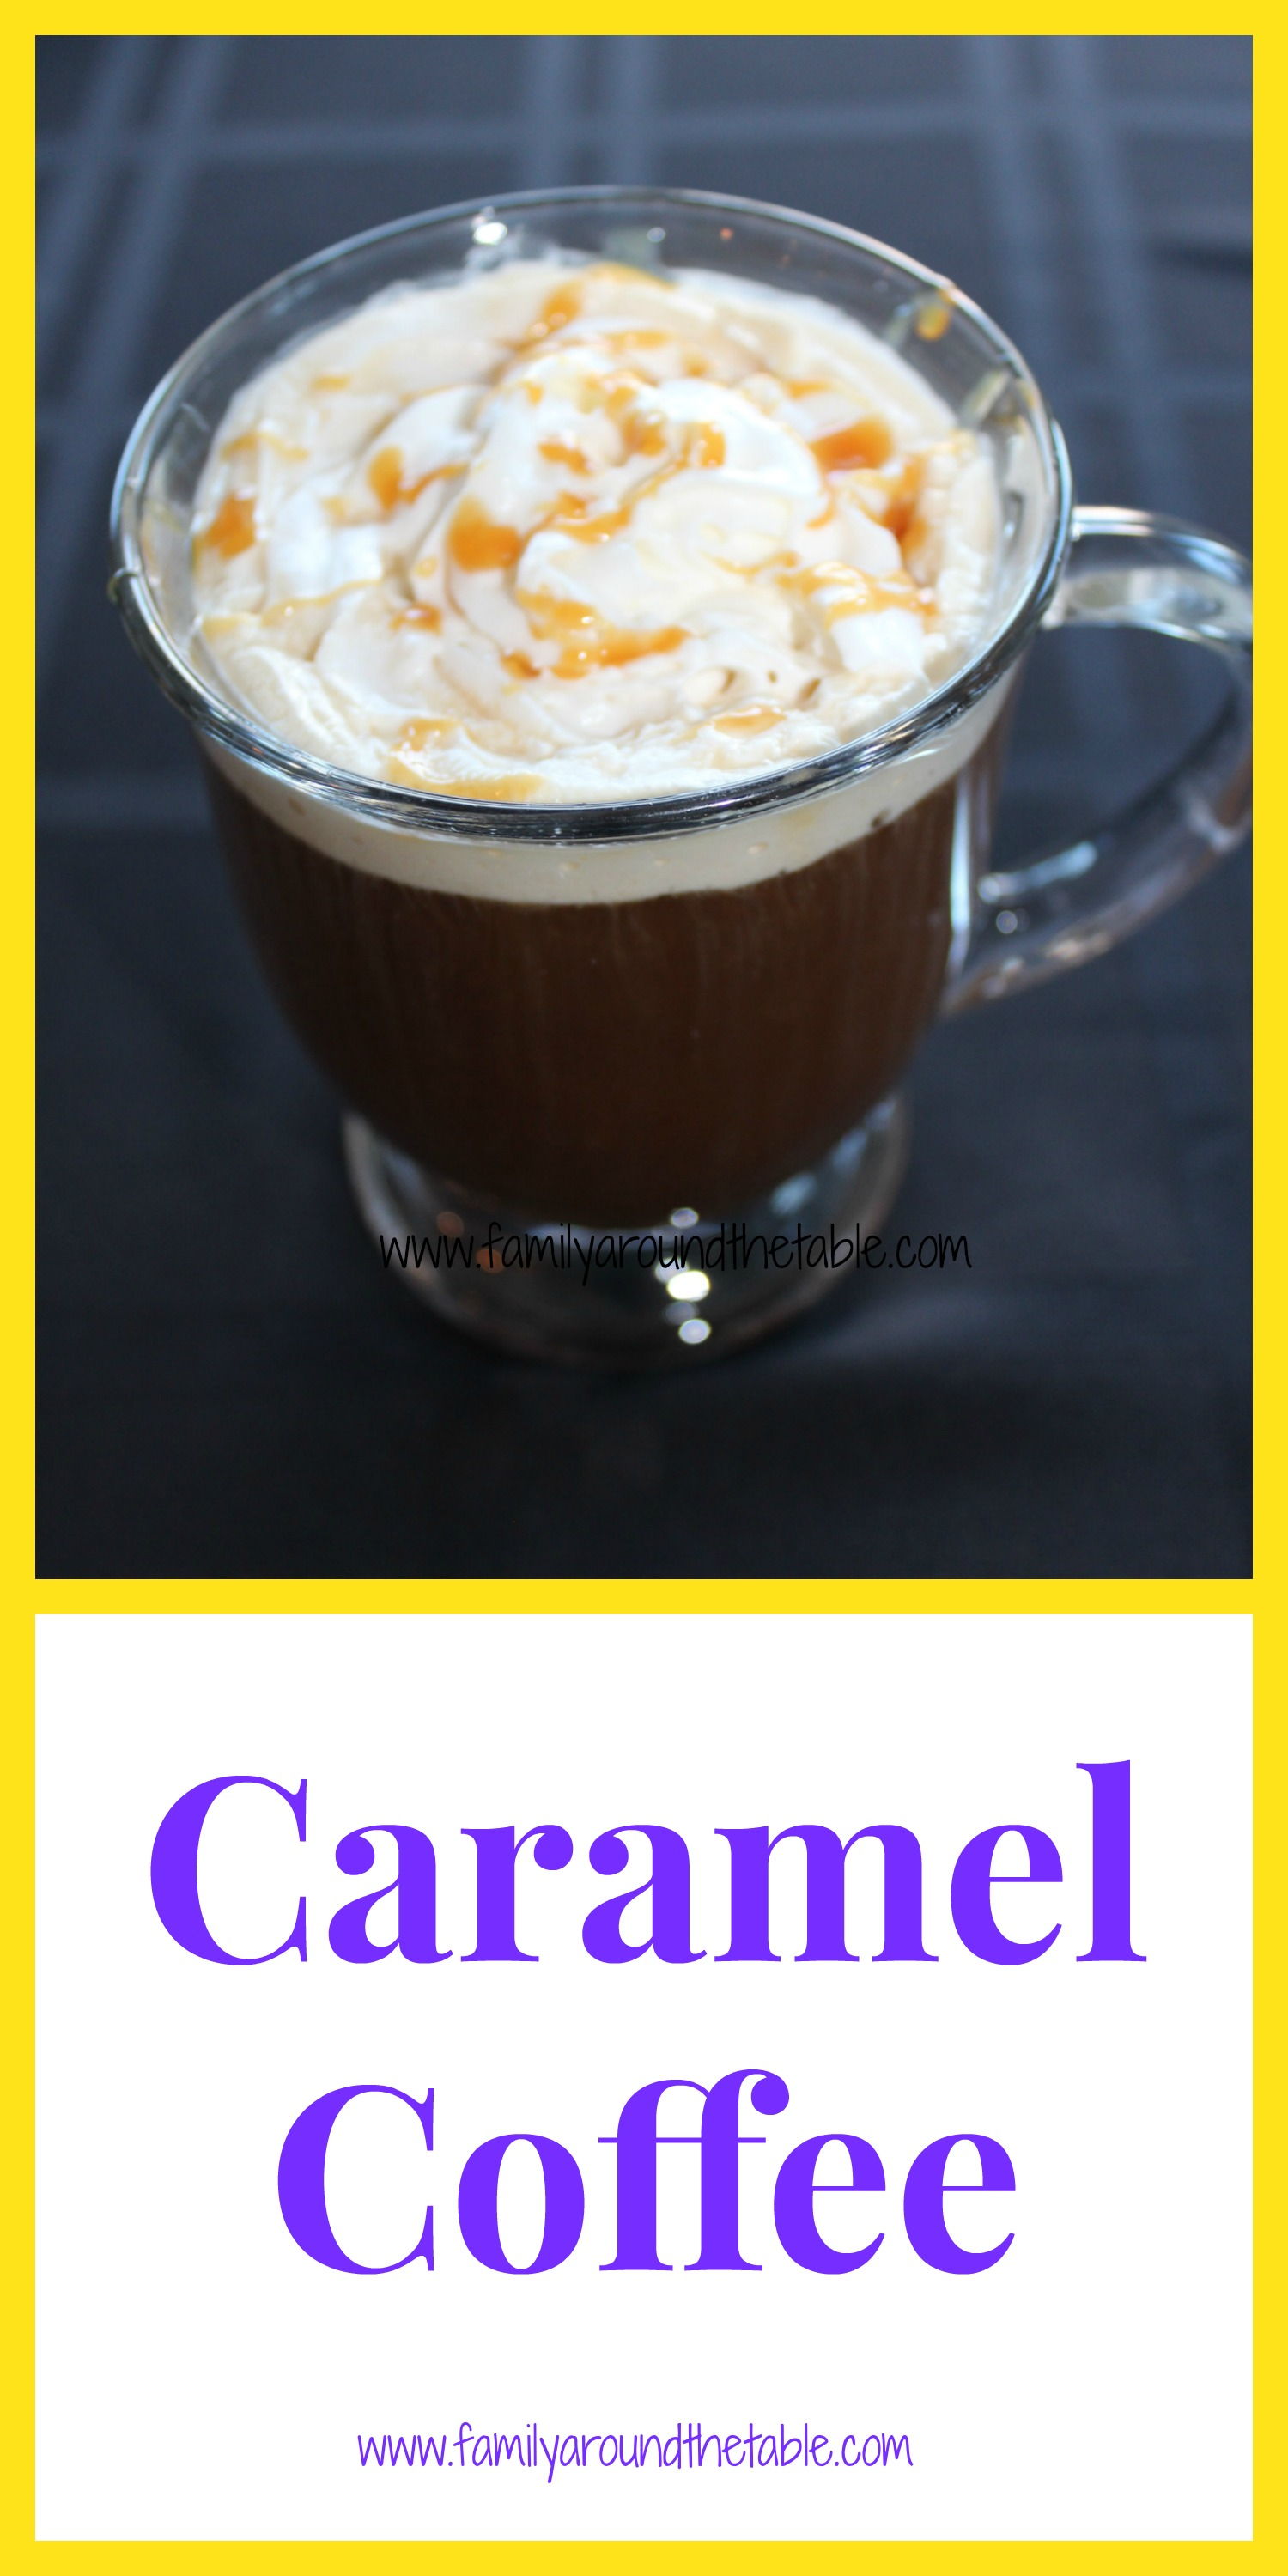 Caramel coffee is easy to make and impressive to serve.